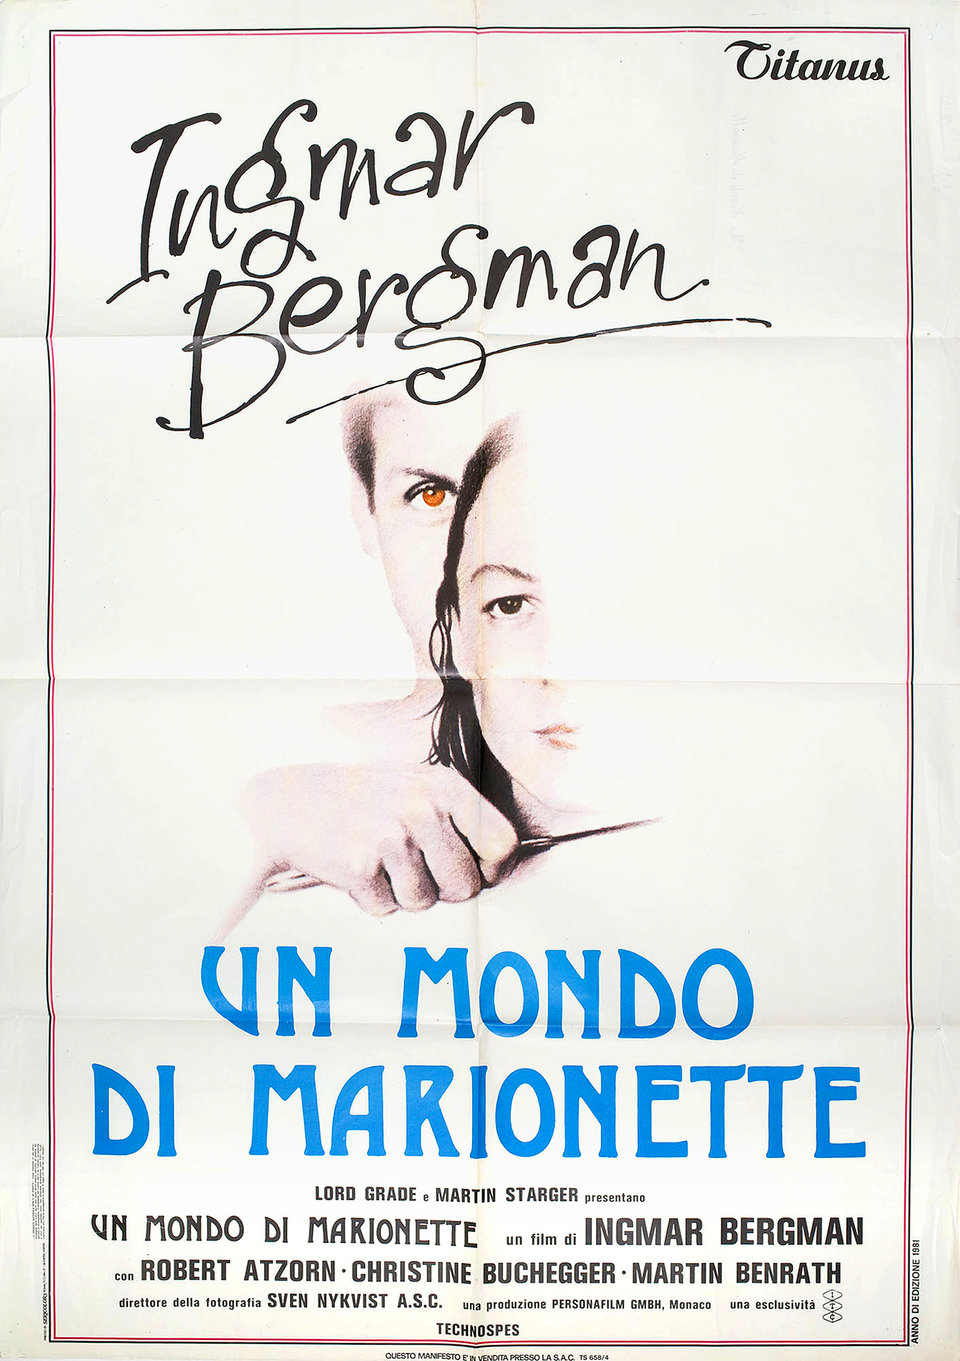 From the Life of the Marionettes 1980 Italian Due Fogli Poster